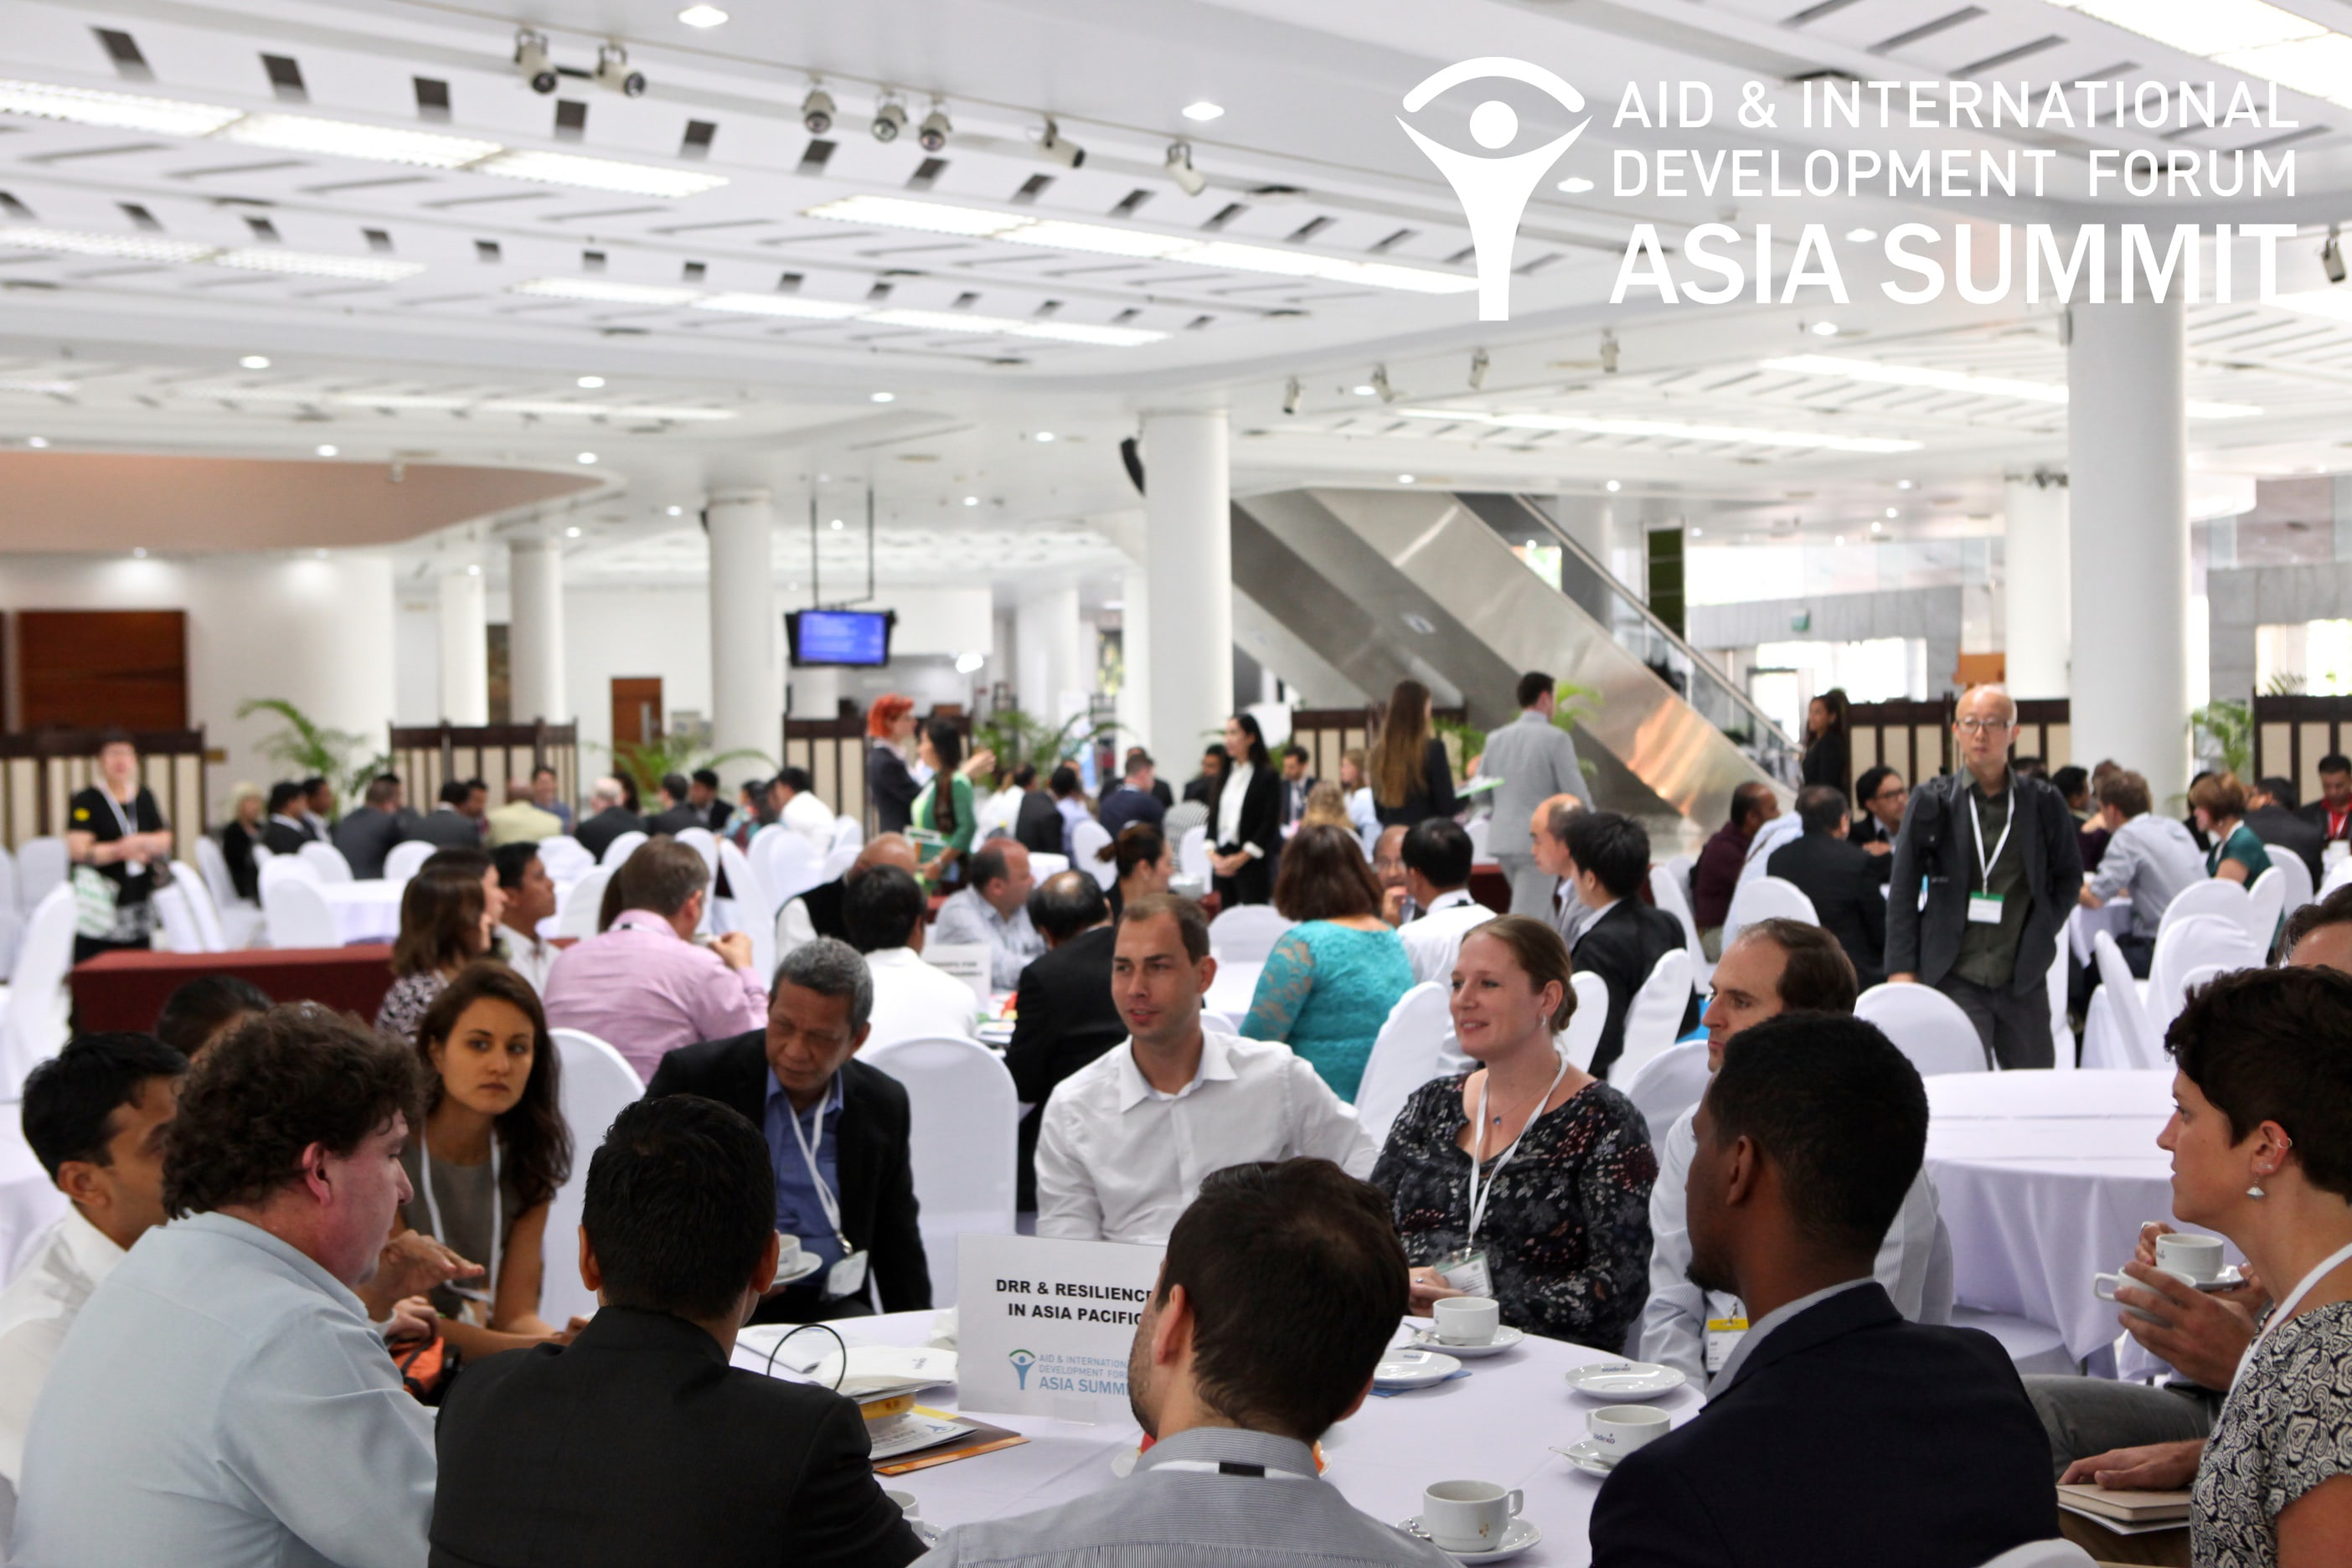 humanitarian leaders to gather at aid development asia summit next week